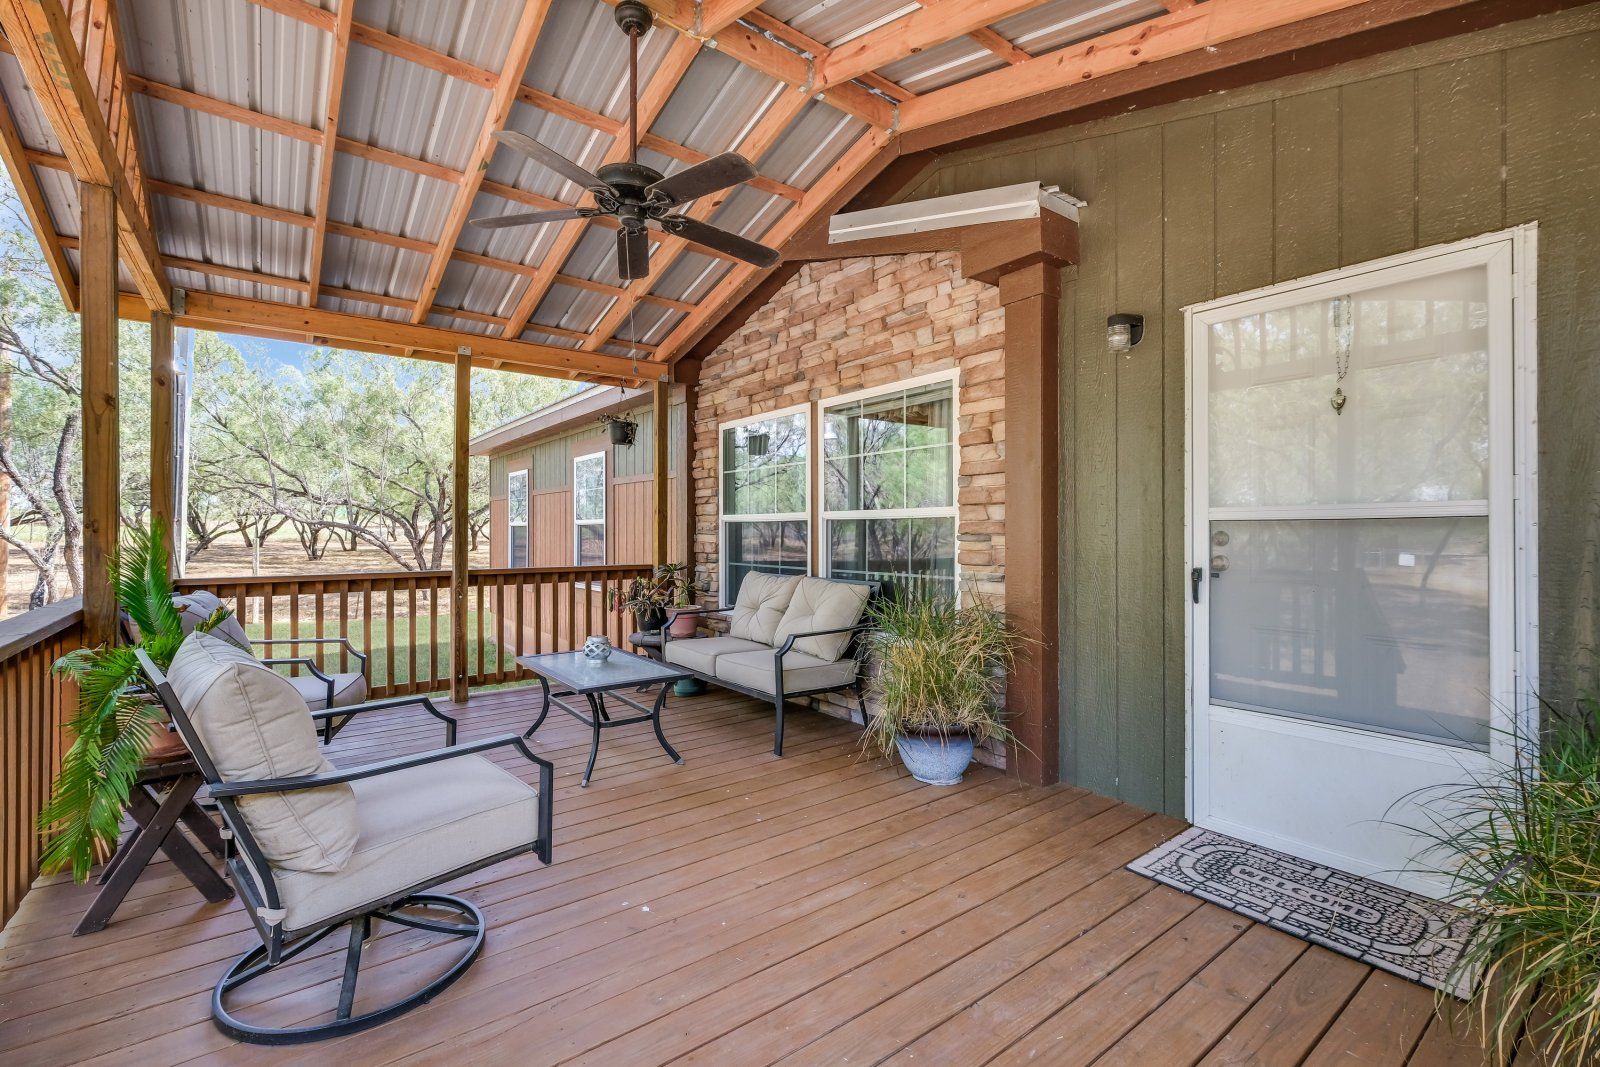 Home for Sale entry deck - Floresville Real Estate Agent